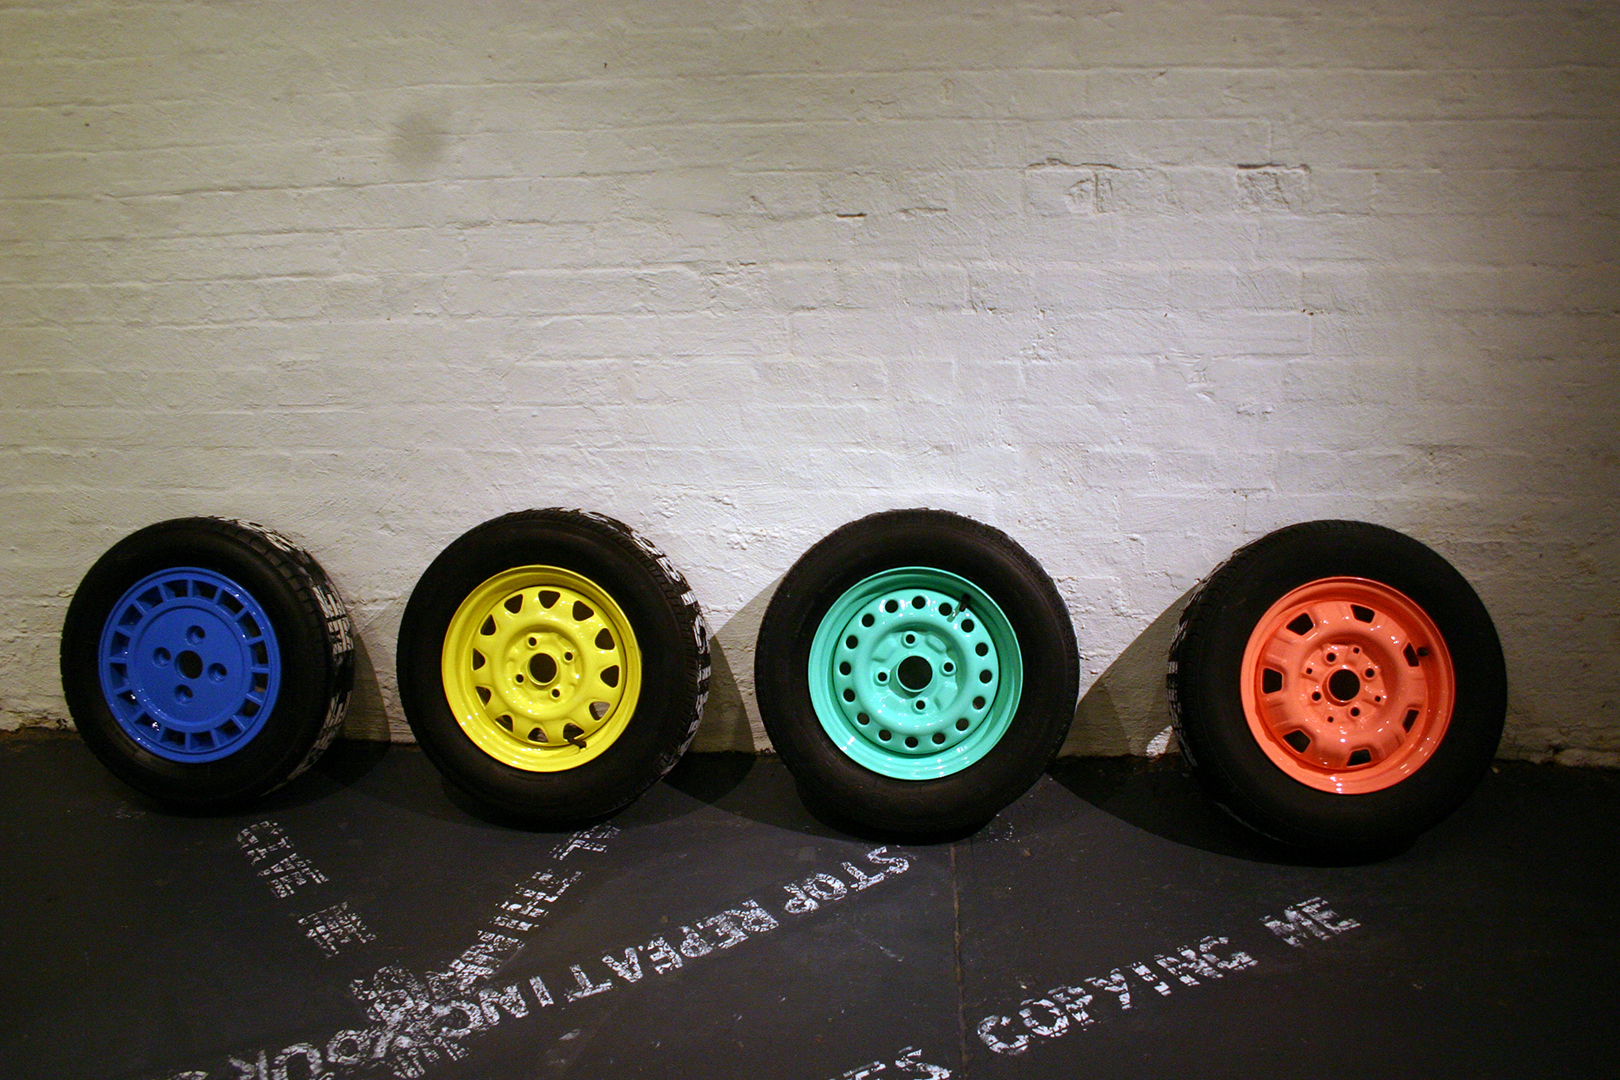 H.W.Y dreams 3  four car tyre relief prints  dimensions variable